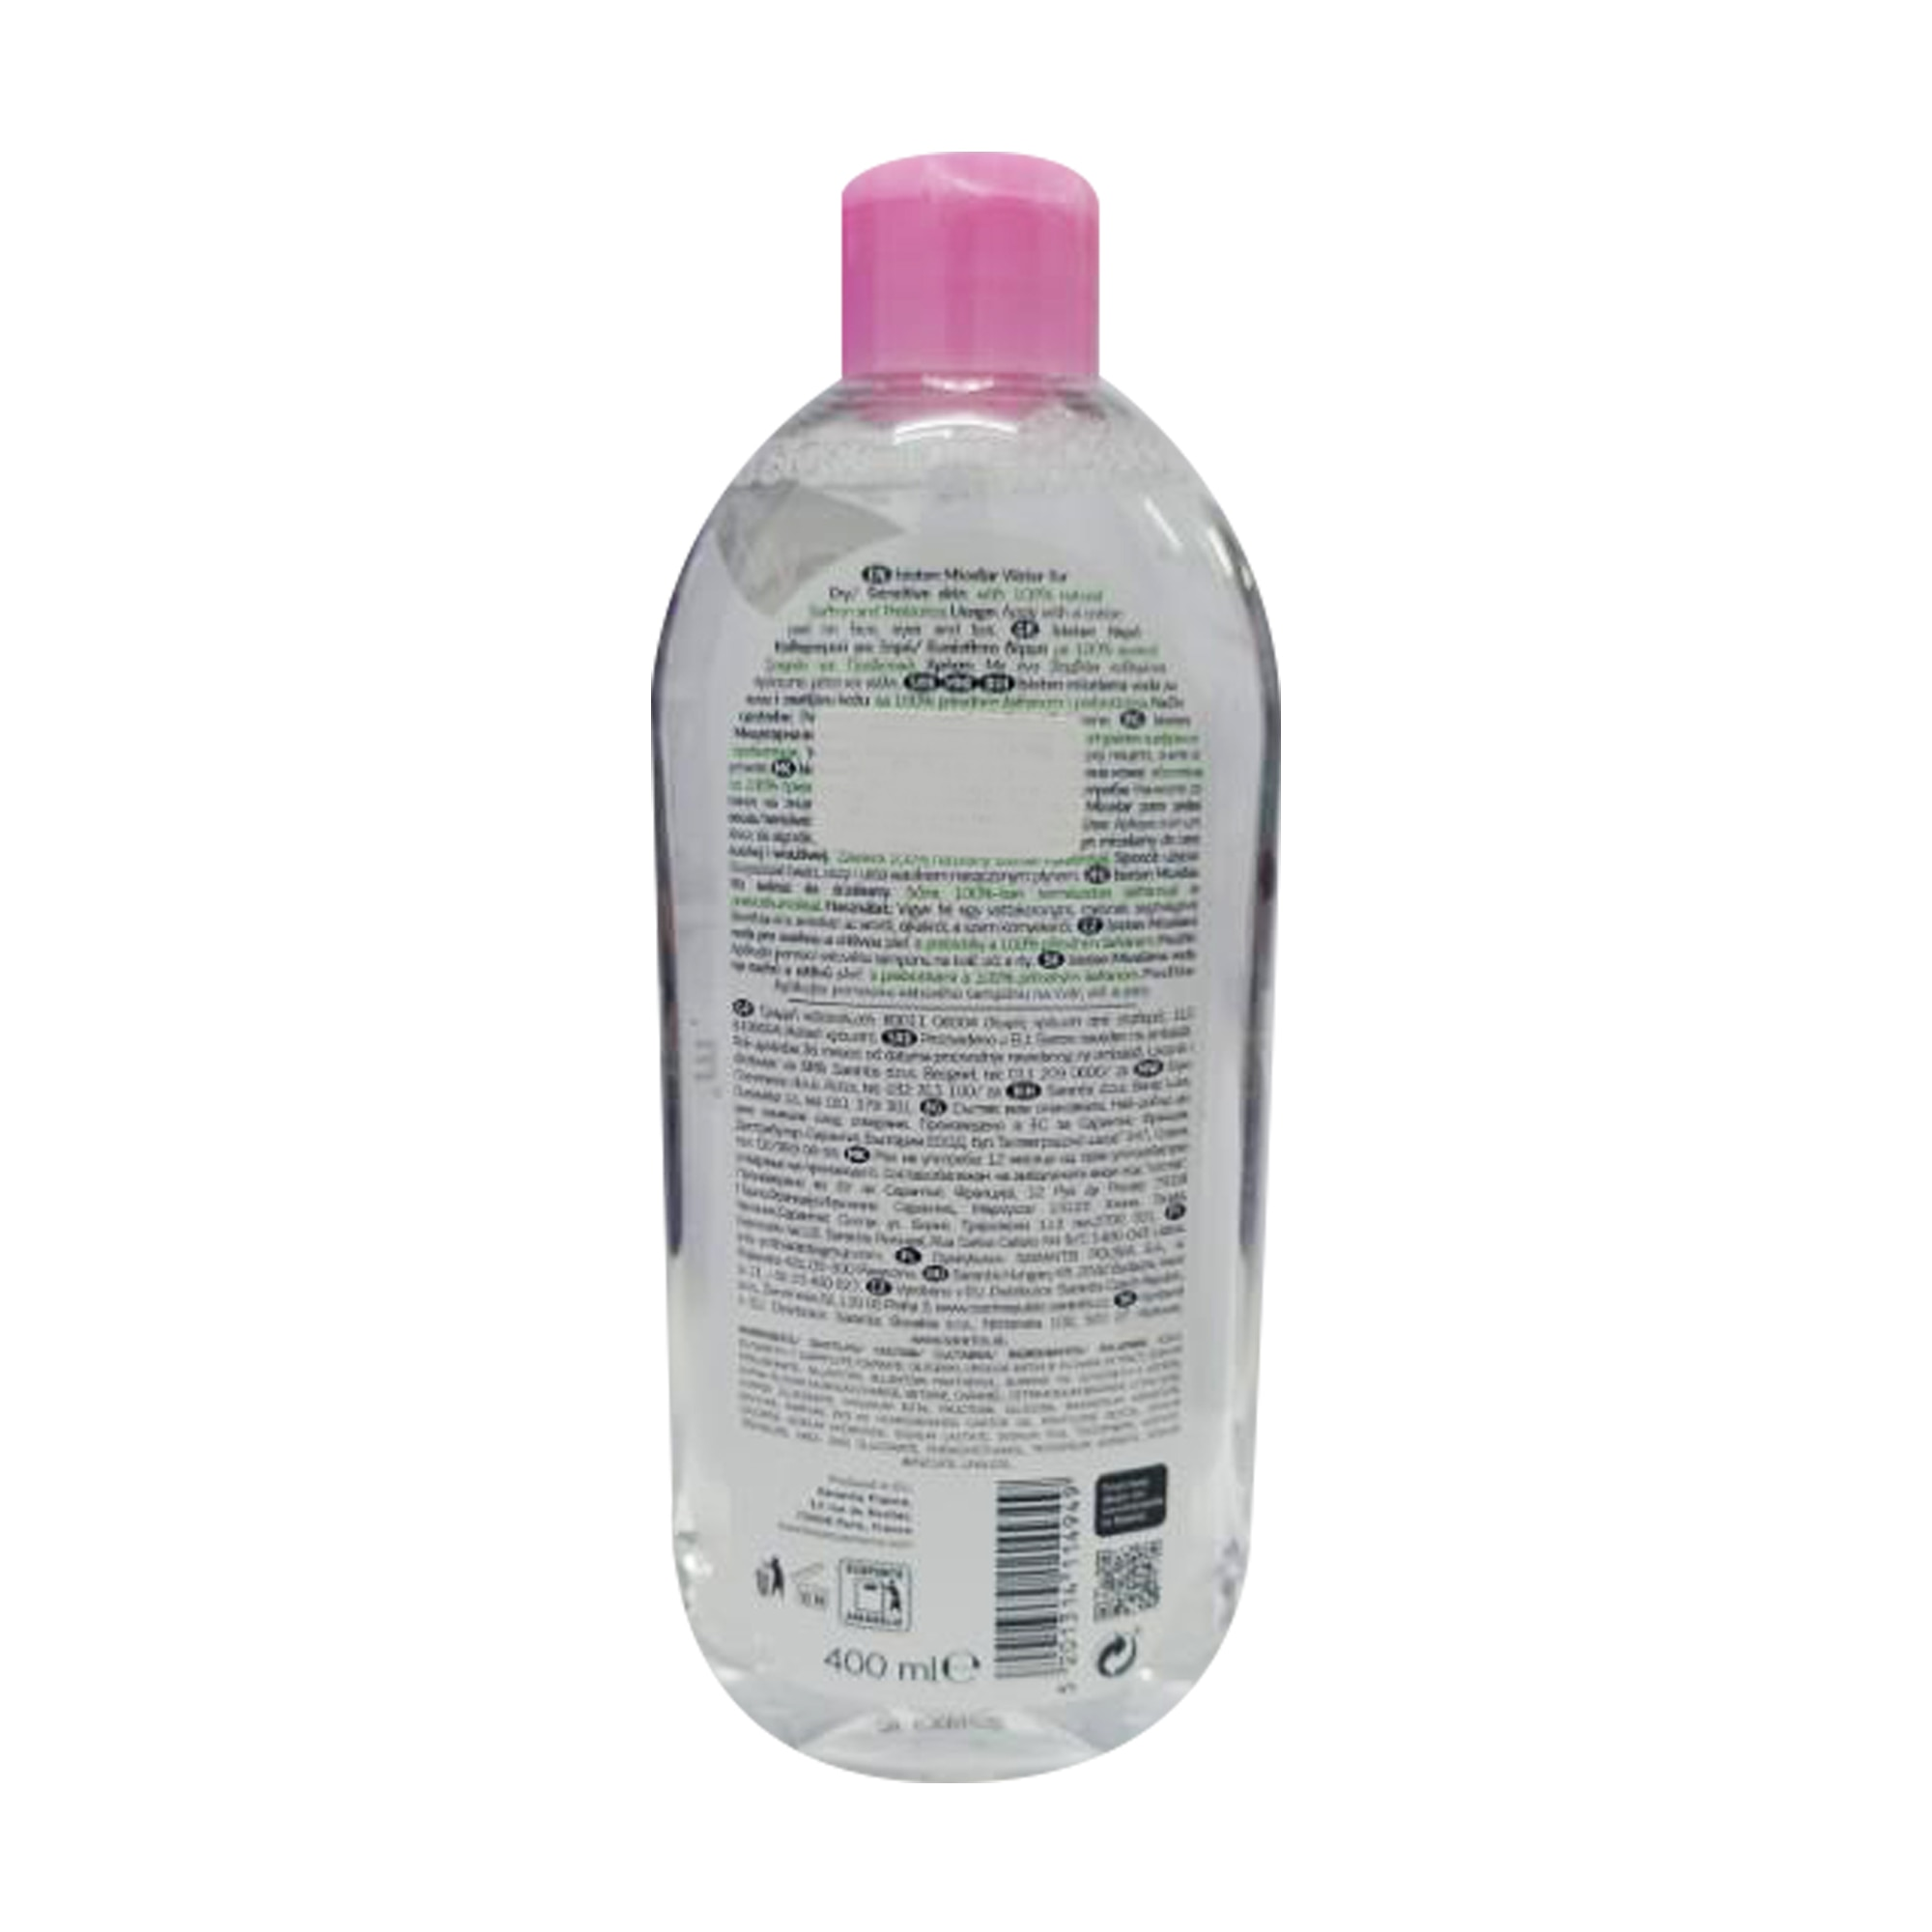 BIOTENSkin Moisture Micellar Water For Face, Eyes And Lips Dry/Sensitive Skin 400 ml,For MenClean Beauty